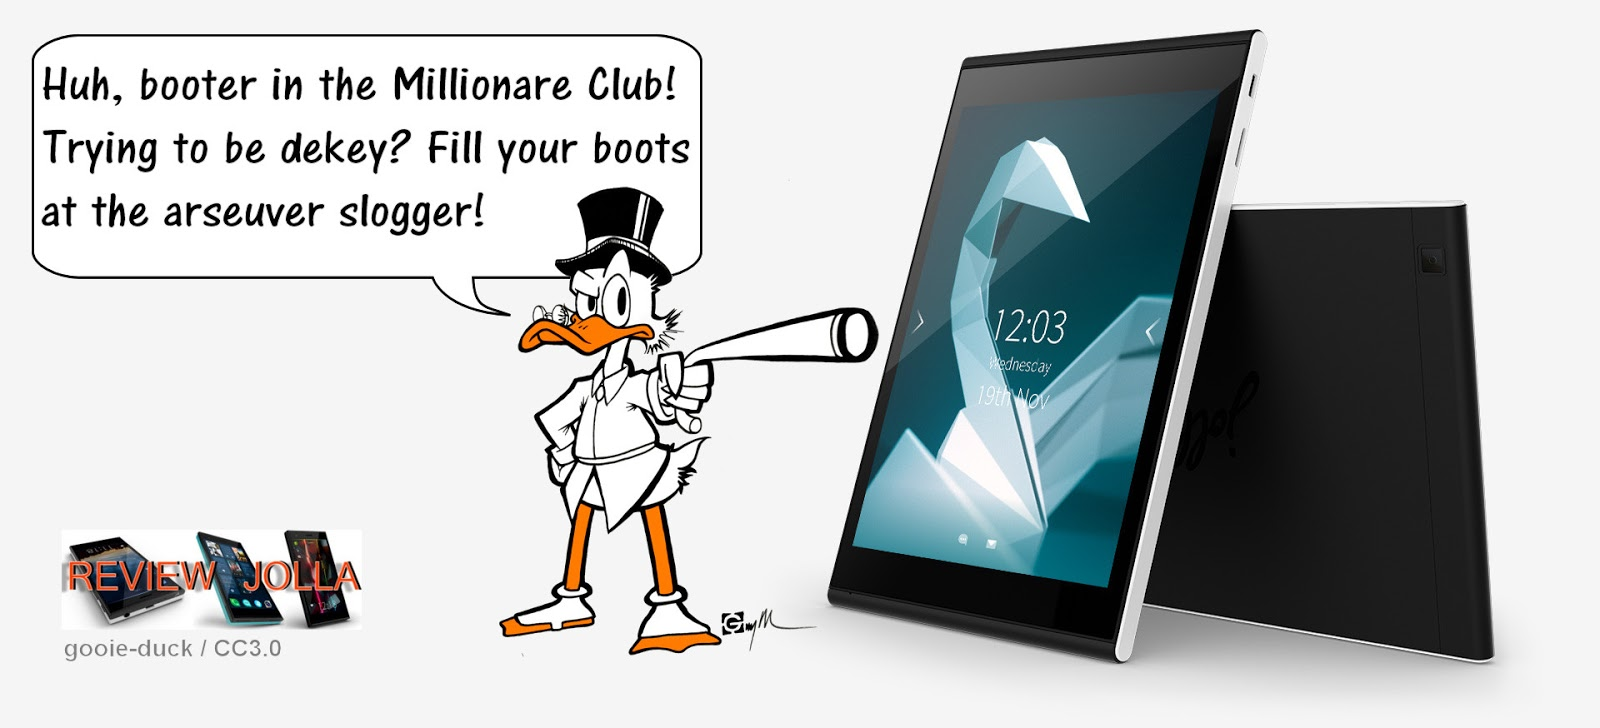 Sailfish OS Reviews: December 2014